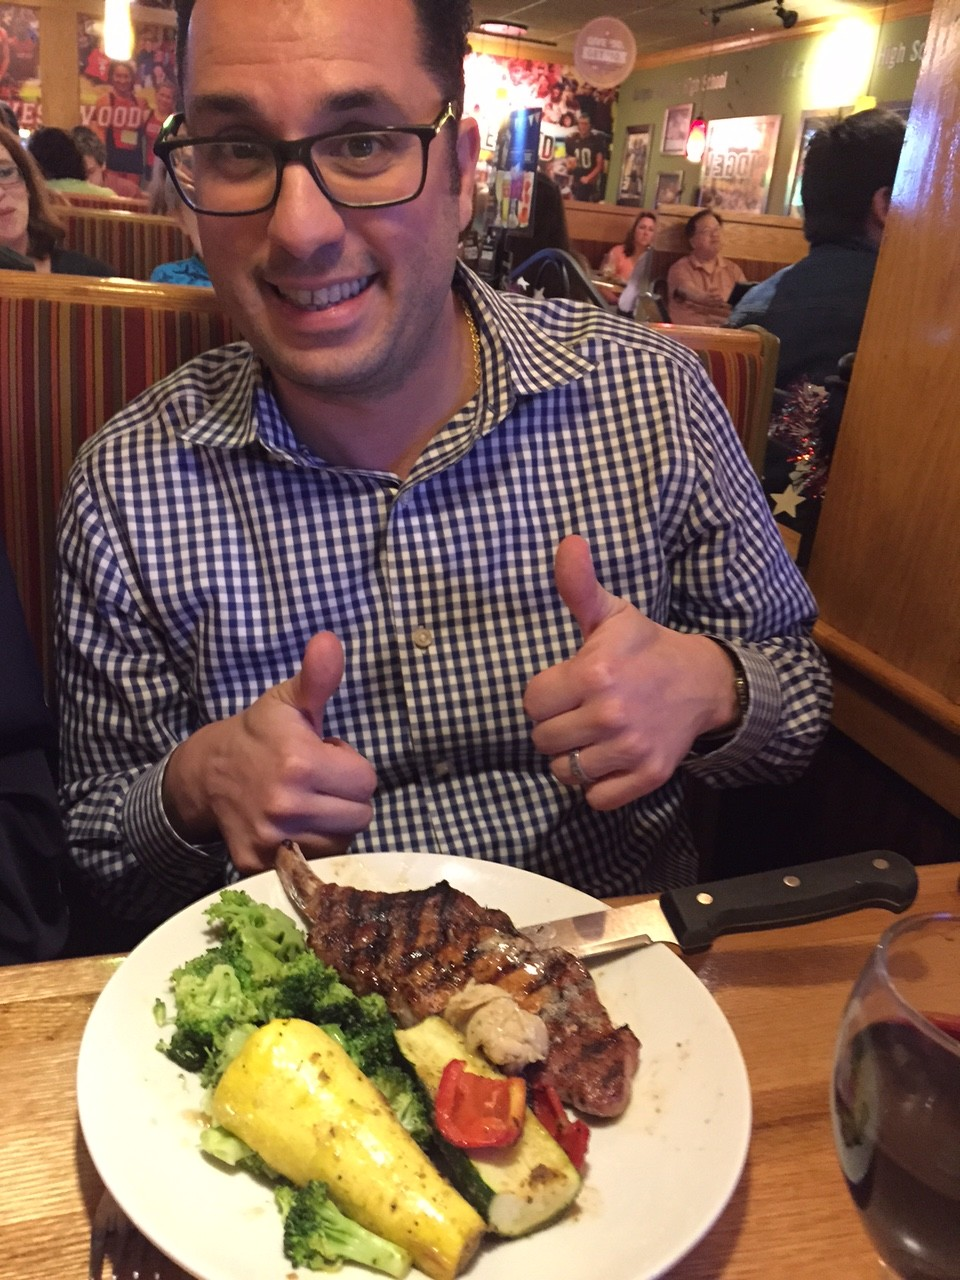 Mike gives his Wood Fired Grilled Pork Chop 2 thumbs up